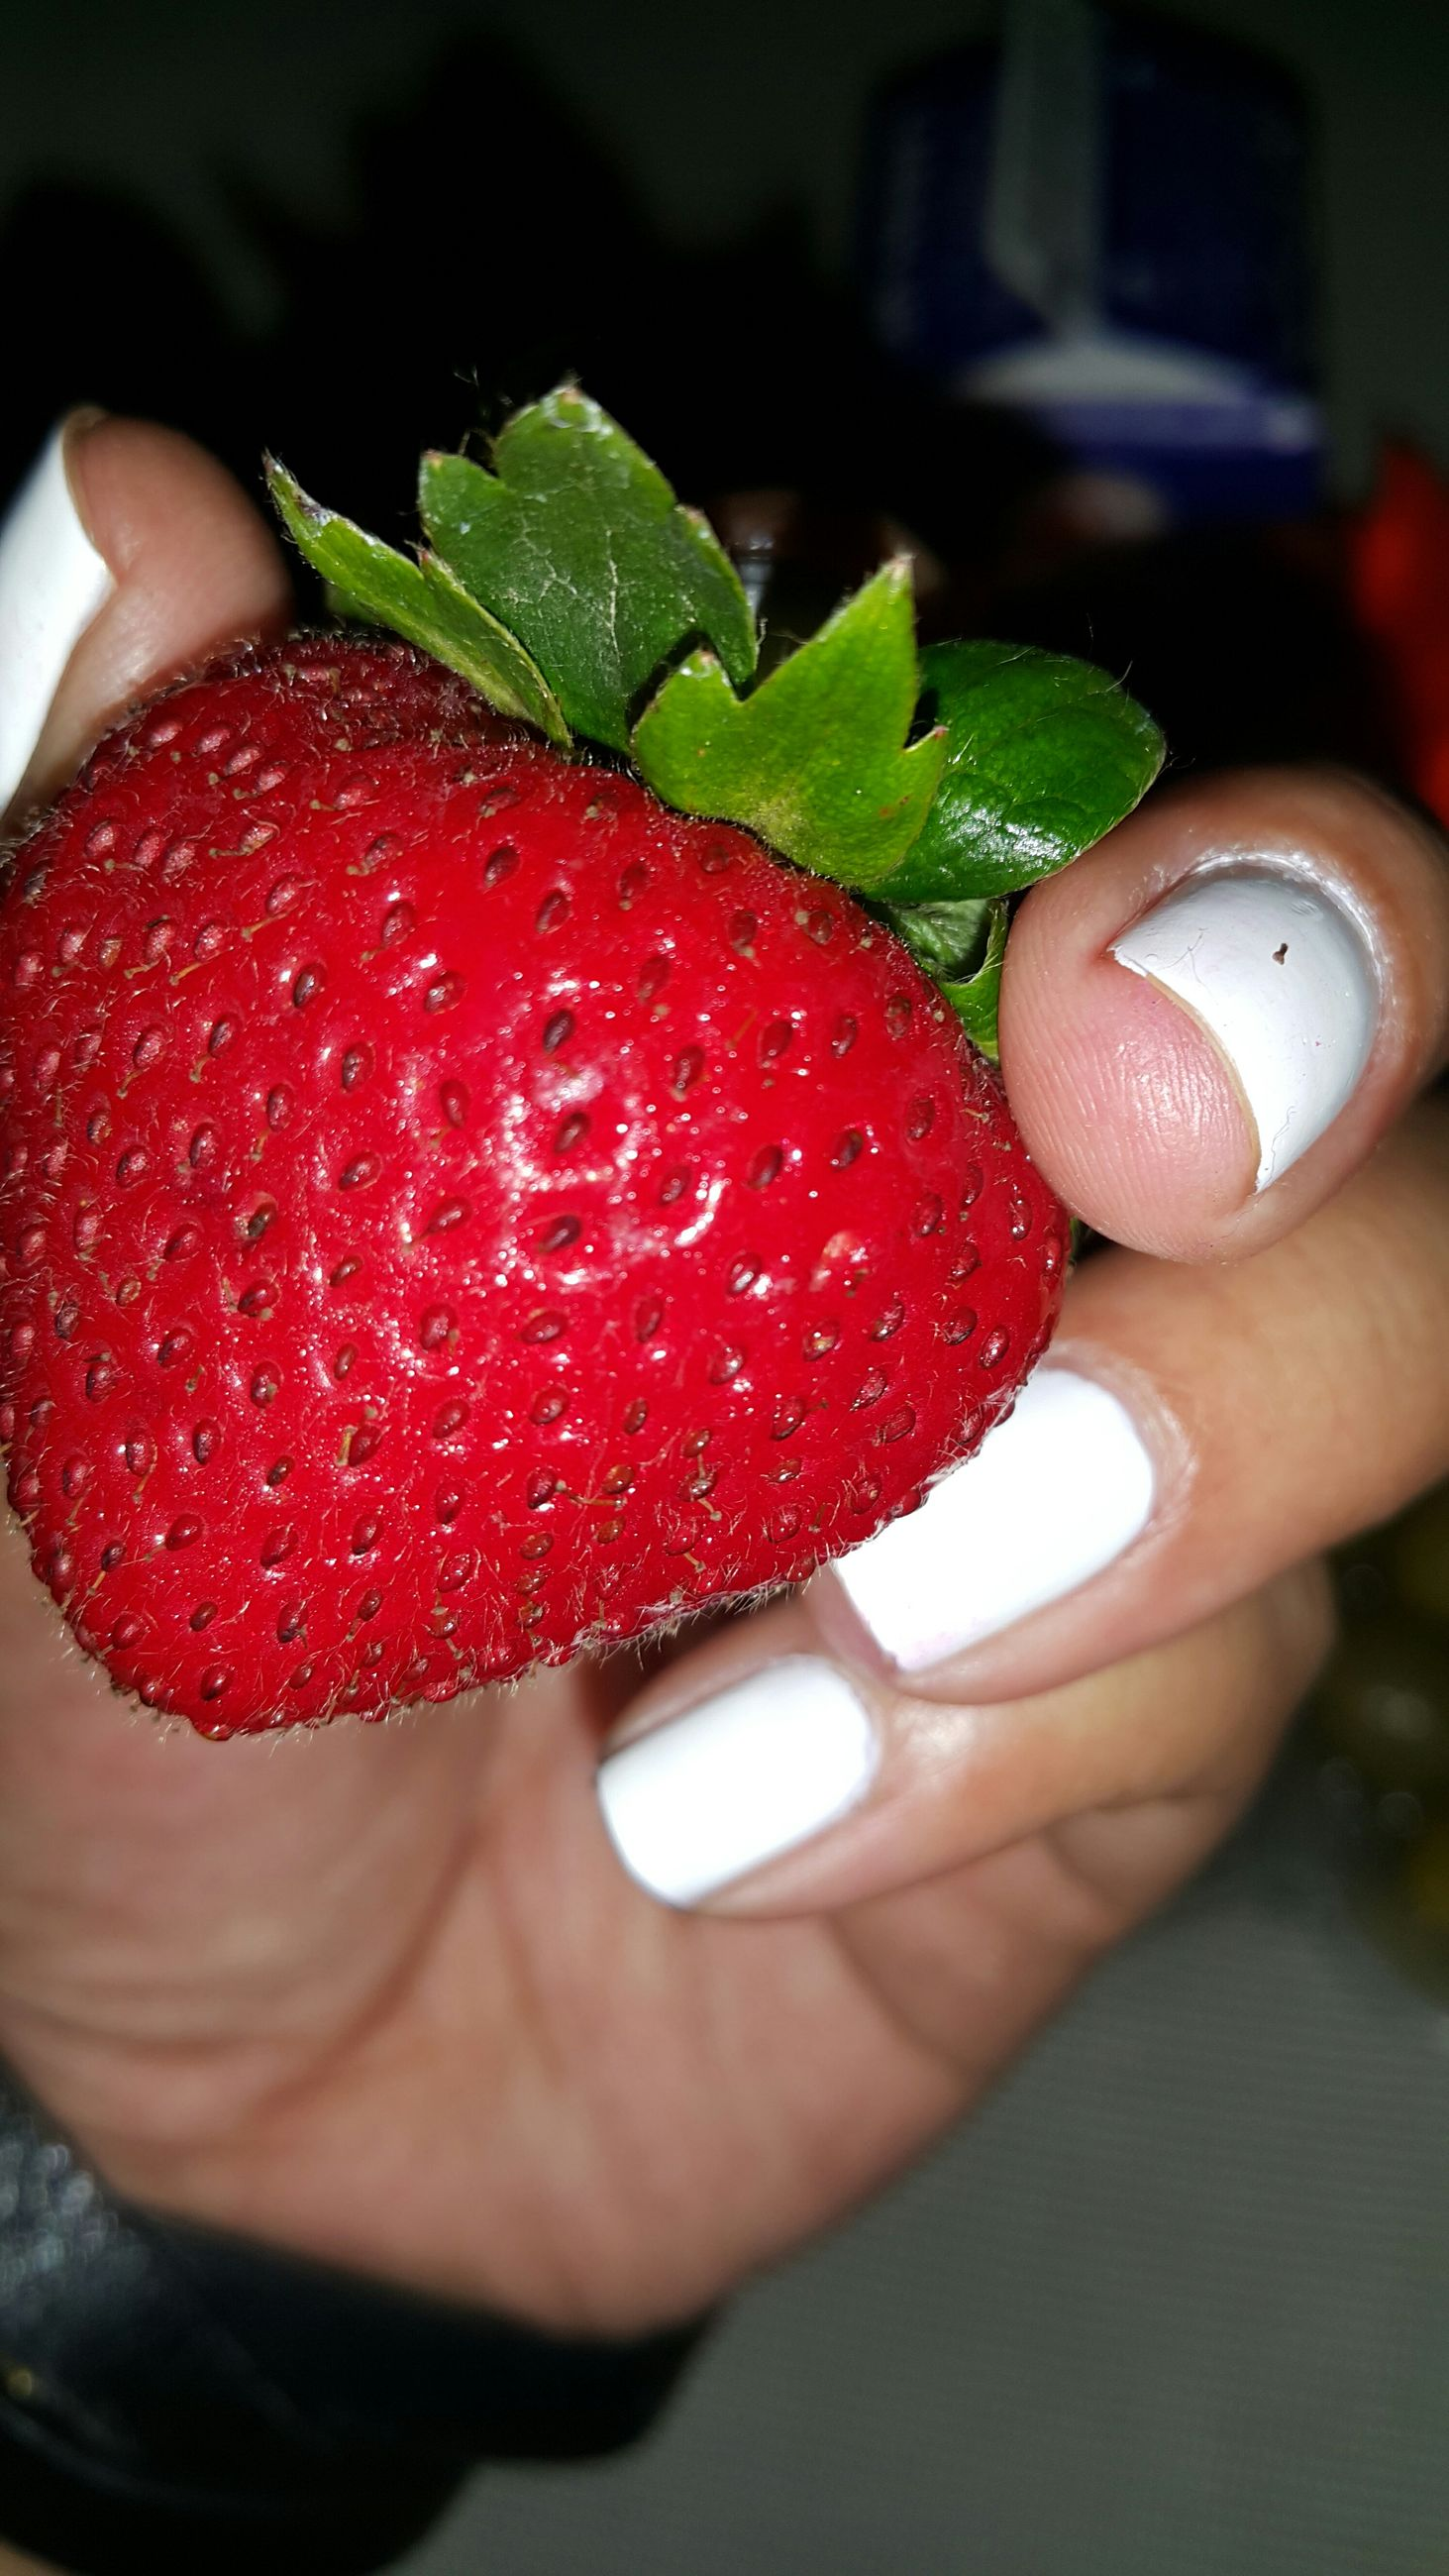 food and drink, person, holding, food, red, freshness, indoors, lifestyles, strawberry, part of, fruit, leisure activity, cropped, personal perspective, healthy eating, close-up